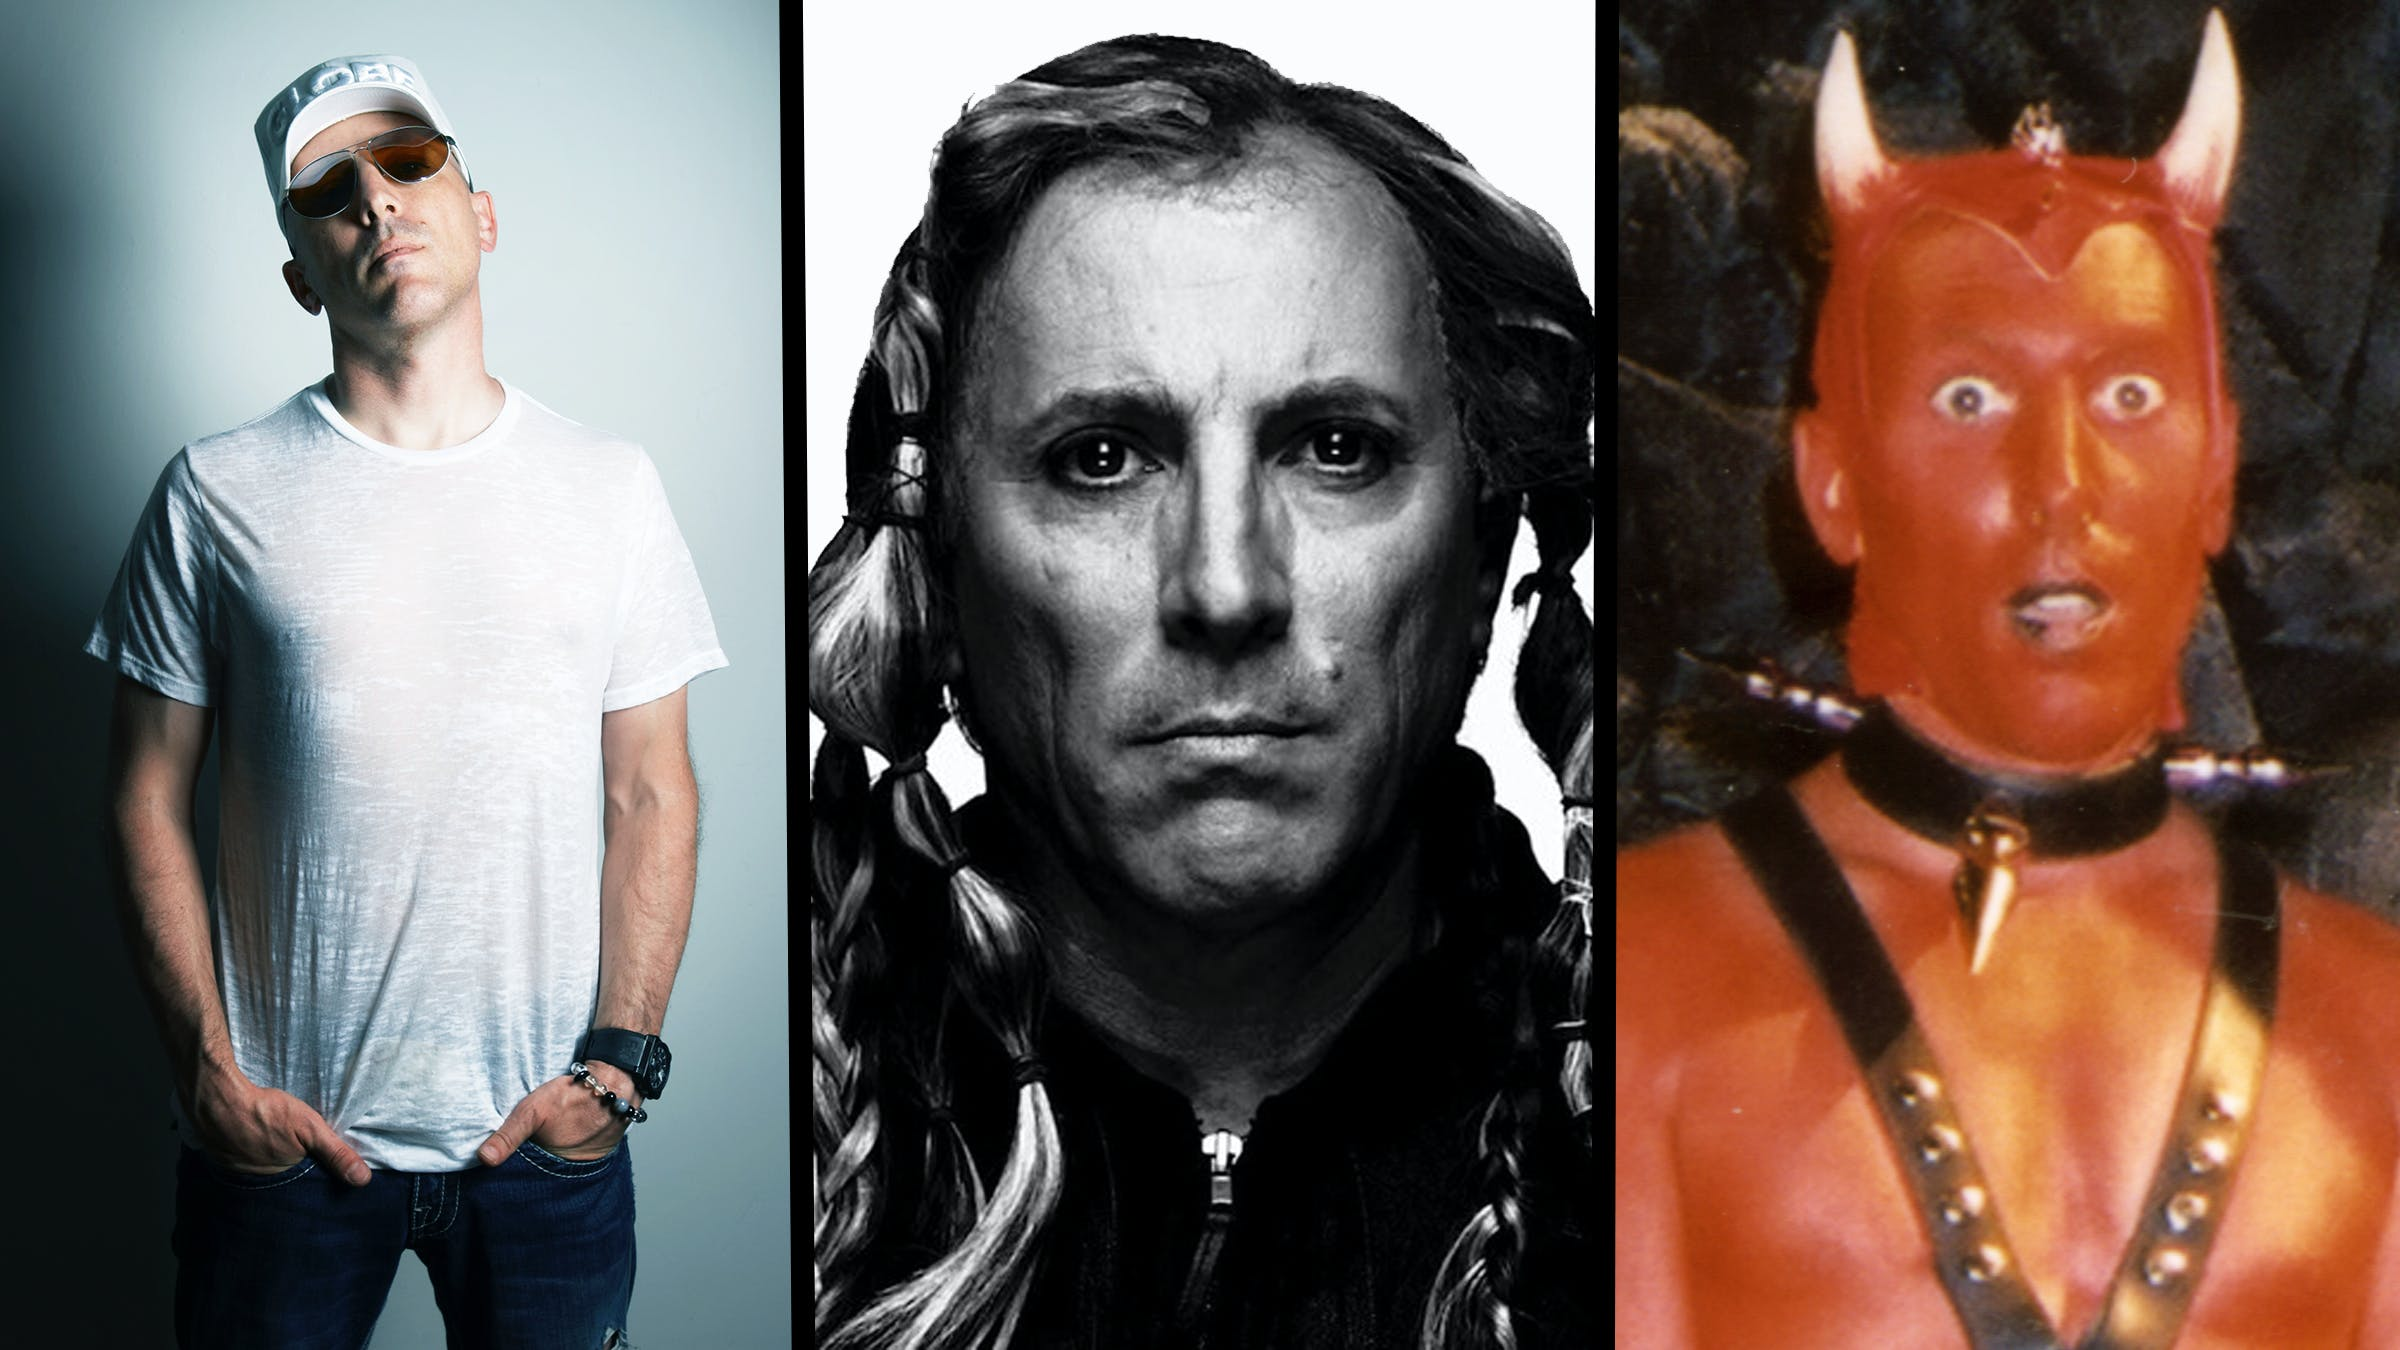 The Many Faces Of Maynard James Keenan